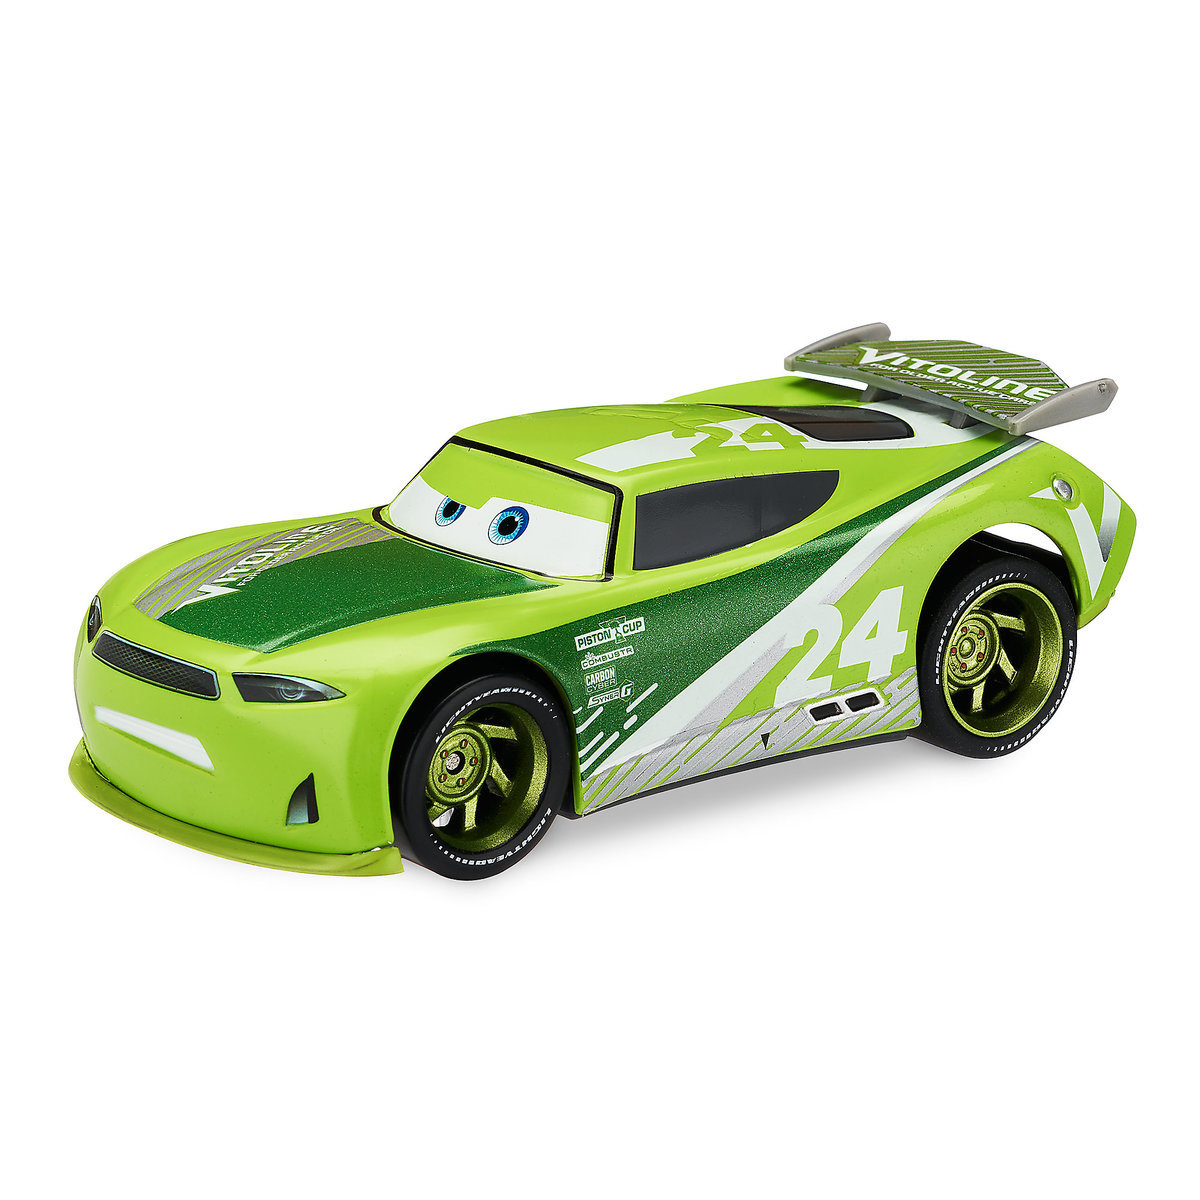 Product Image Of Chase Racelott Pull N Race Cast Car Cars